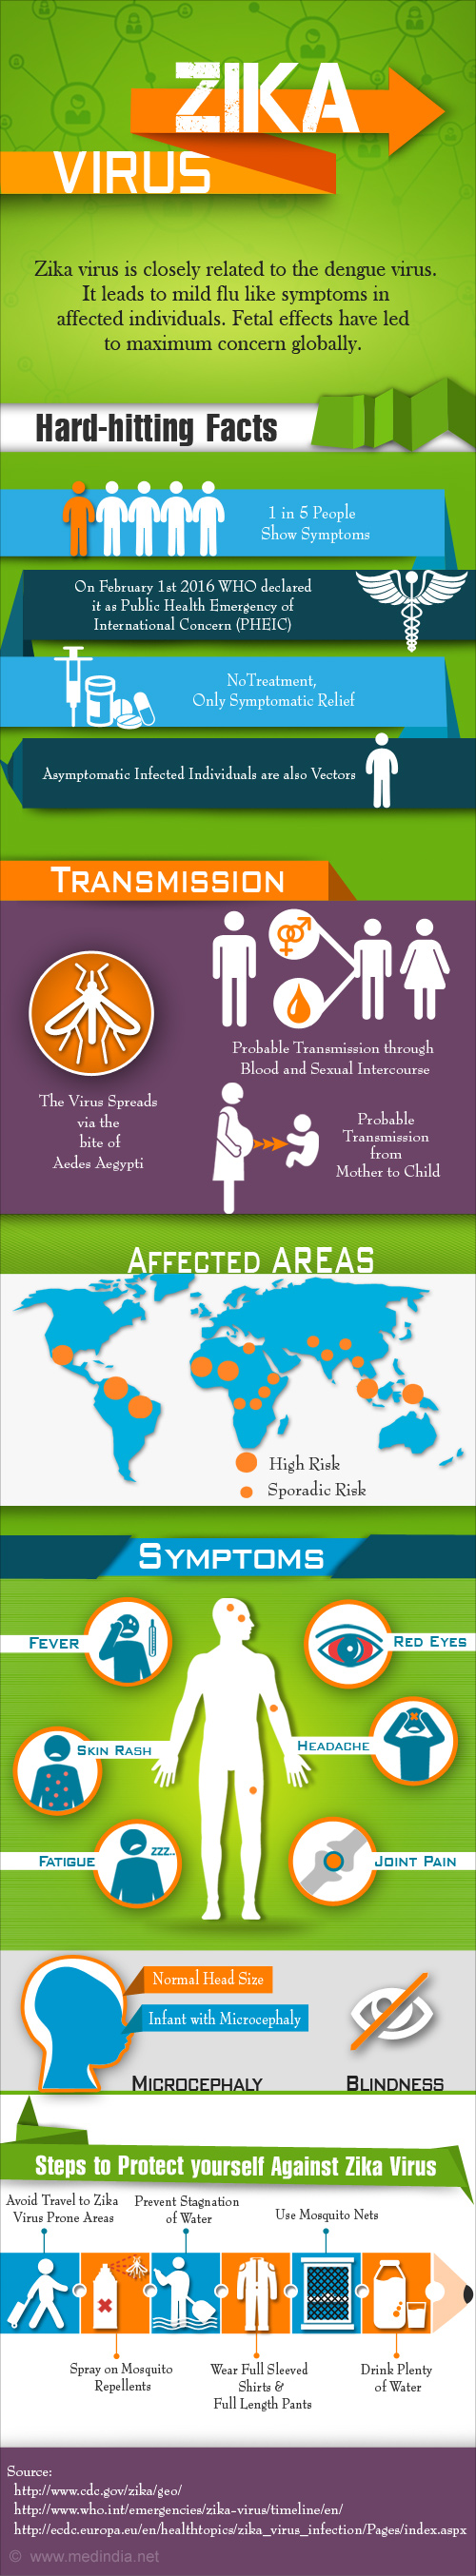 Zika Virus - Infographic